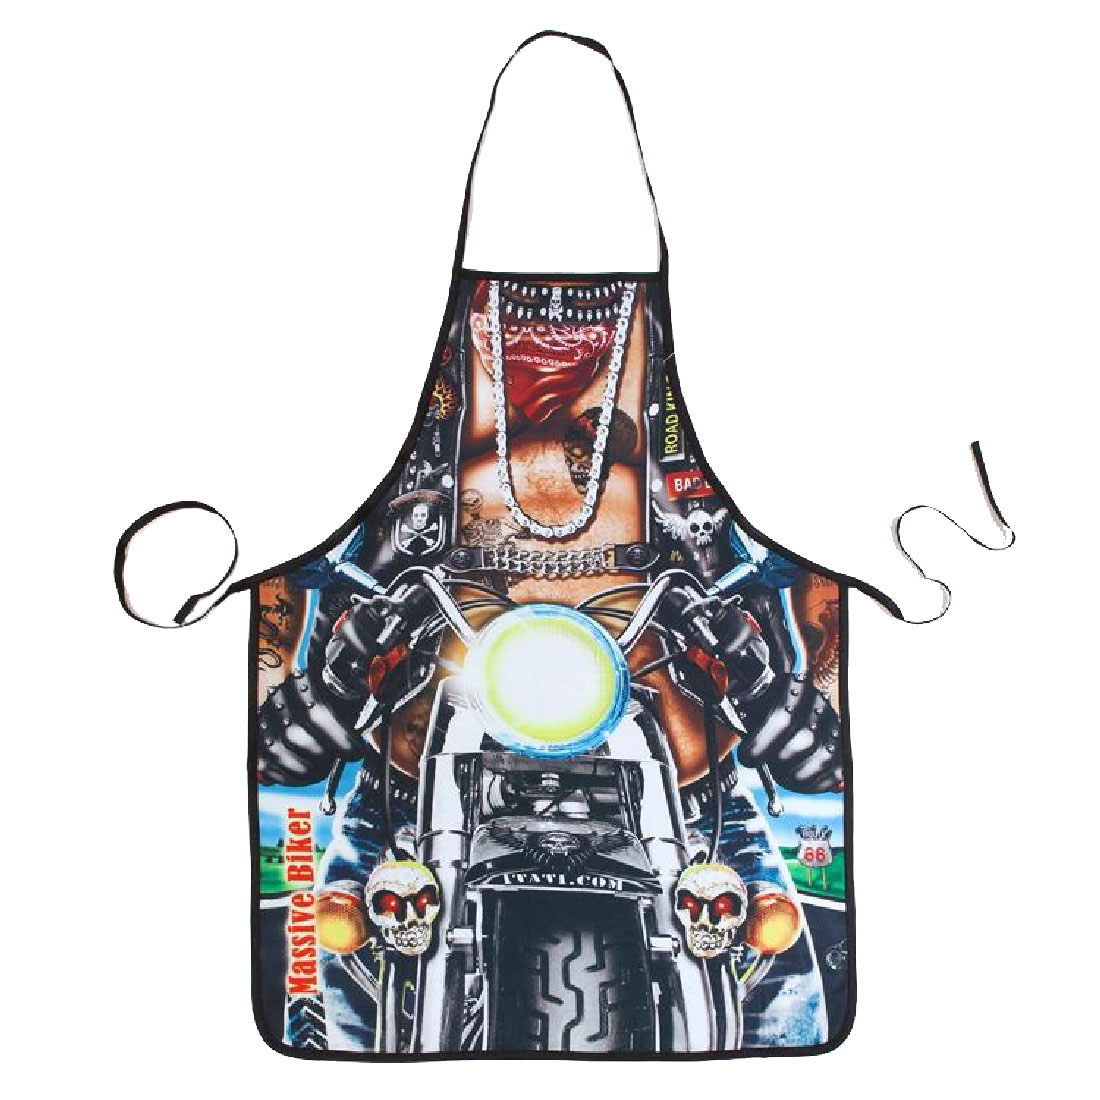 Novelty Cooking <font><b>Kitchen</b></font> Motorcycle Man Print <font><b>Sexy</b></font> Baking Present Pinafore Chef Funny <font><b>apron</b></font> image